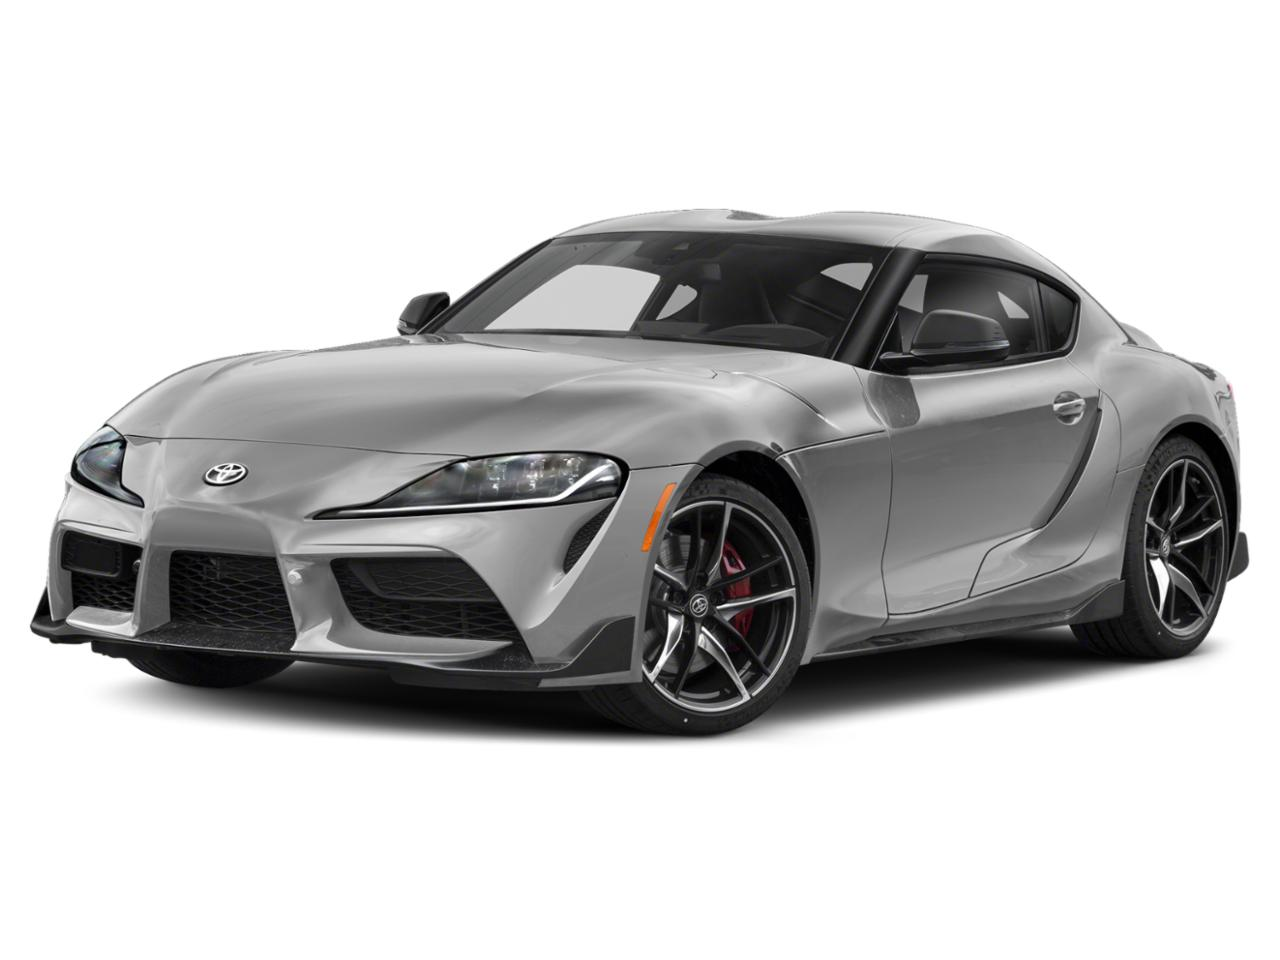 2020 Toyota GR Supra Vehicle Photo in Smyrna, GA 30080